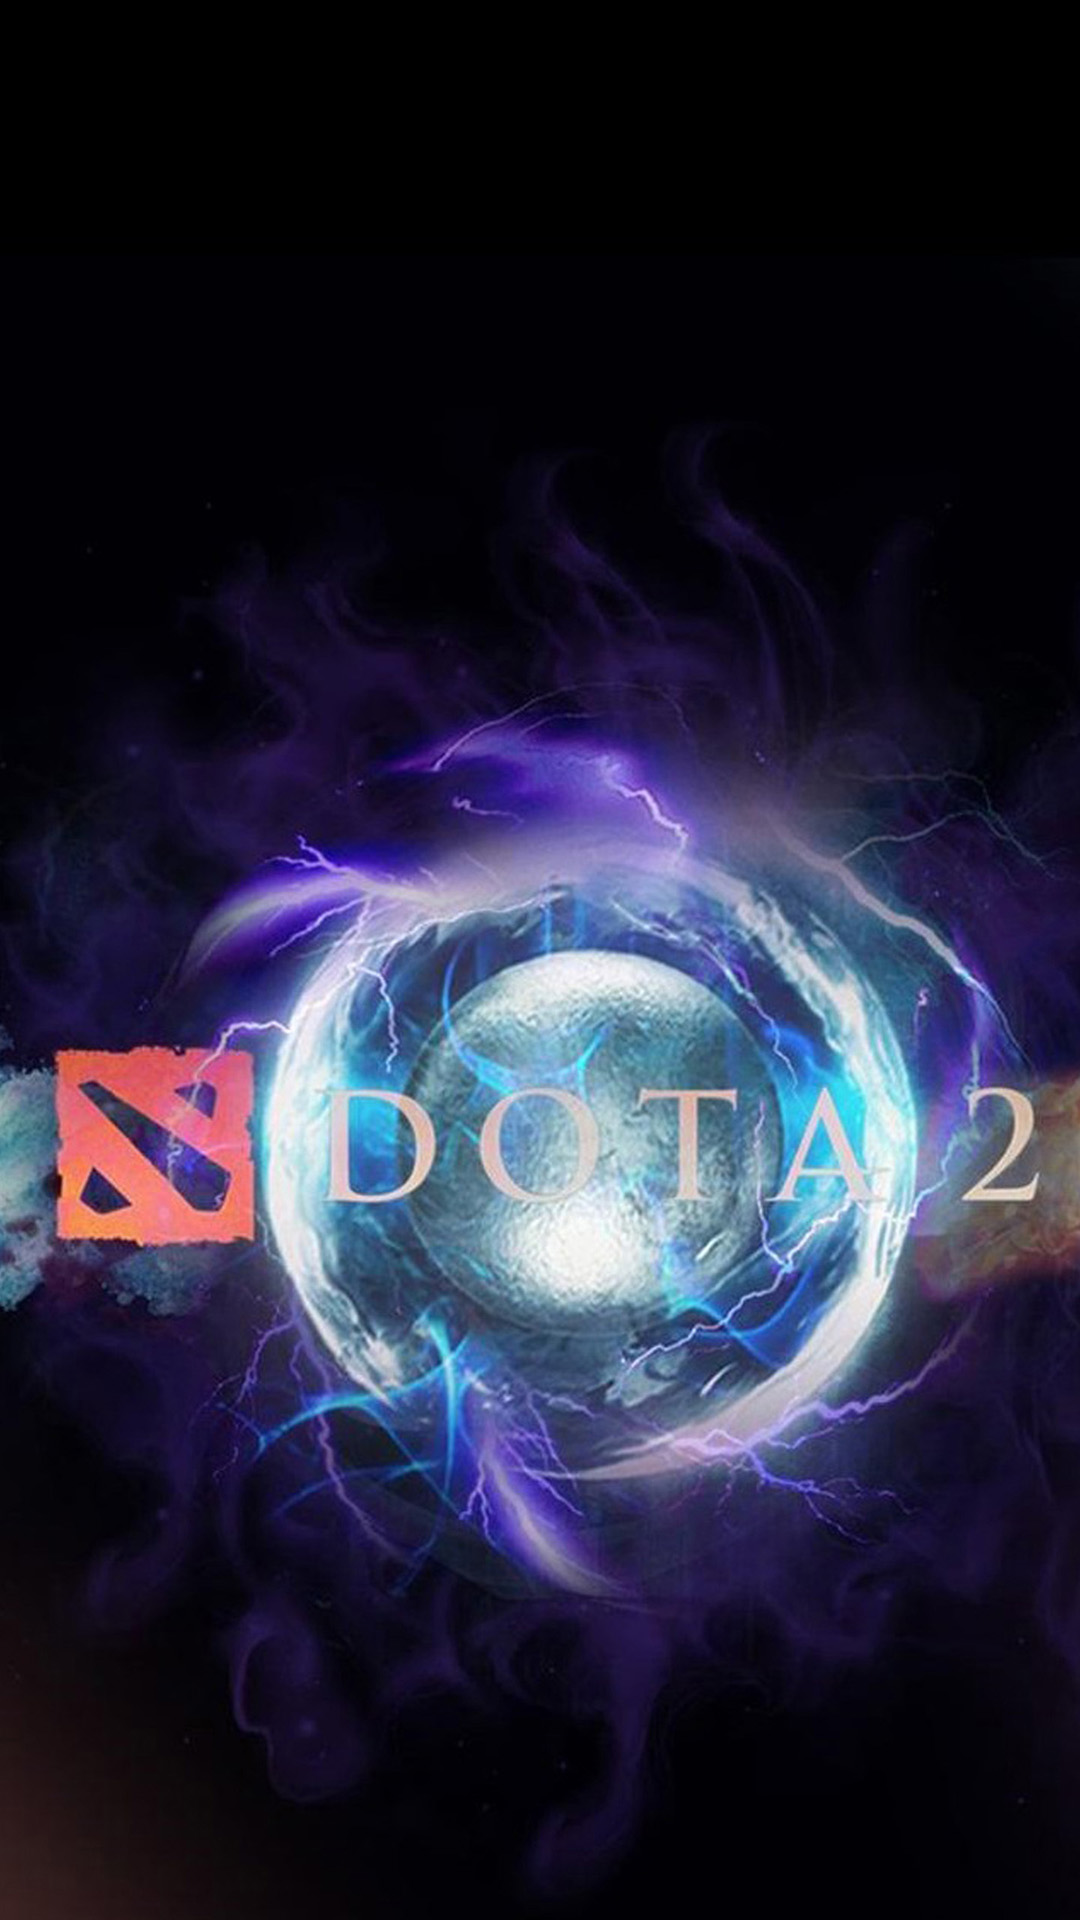 Dota 2 Logo Android Wallpaper